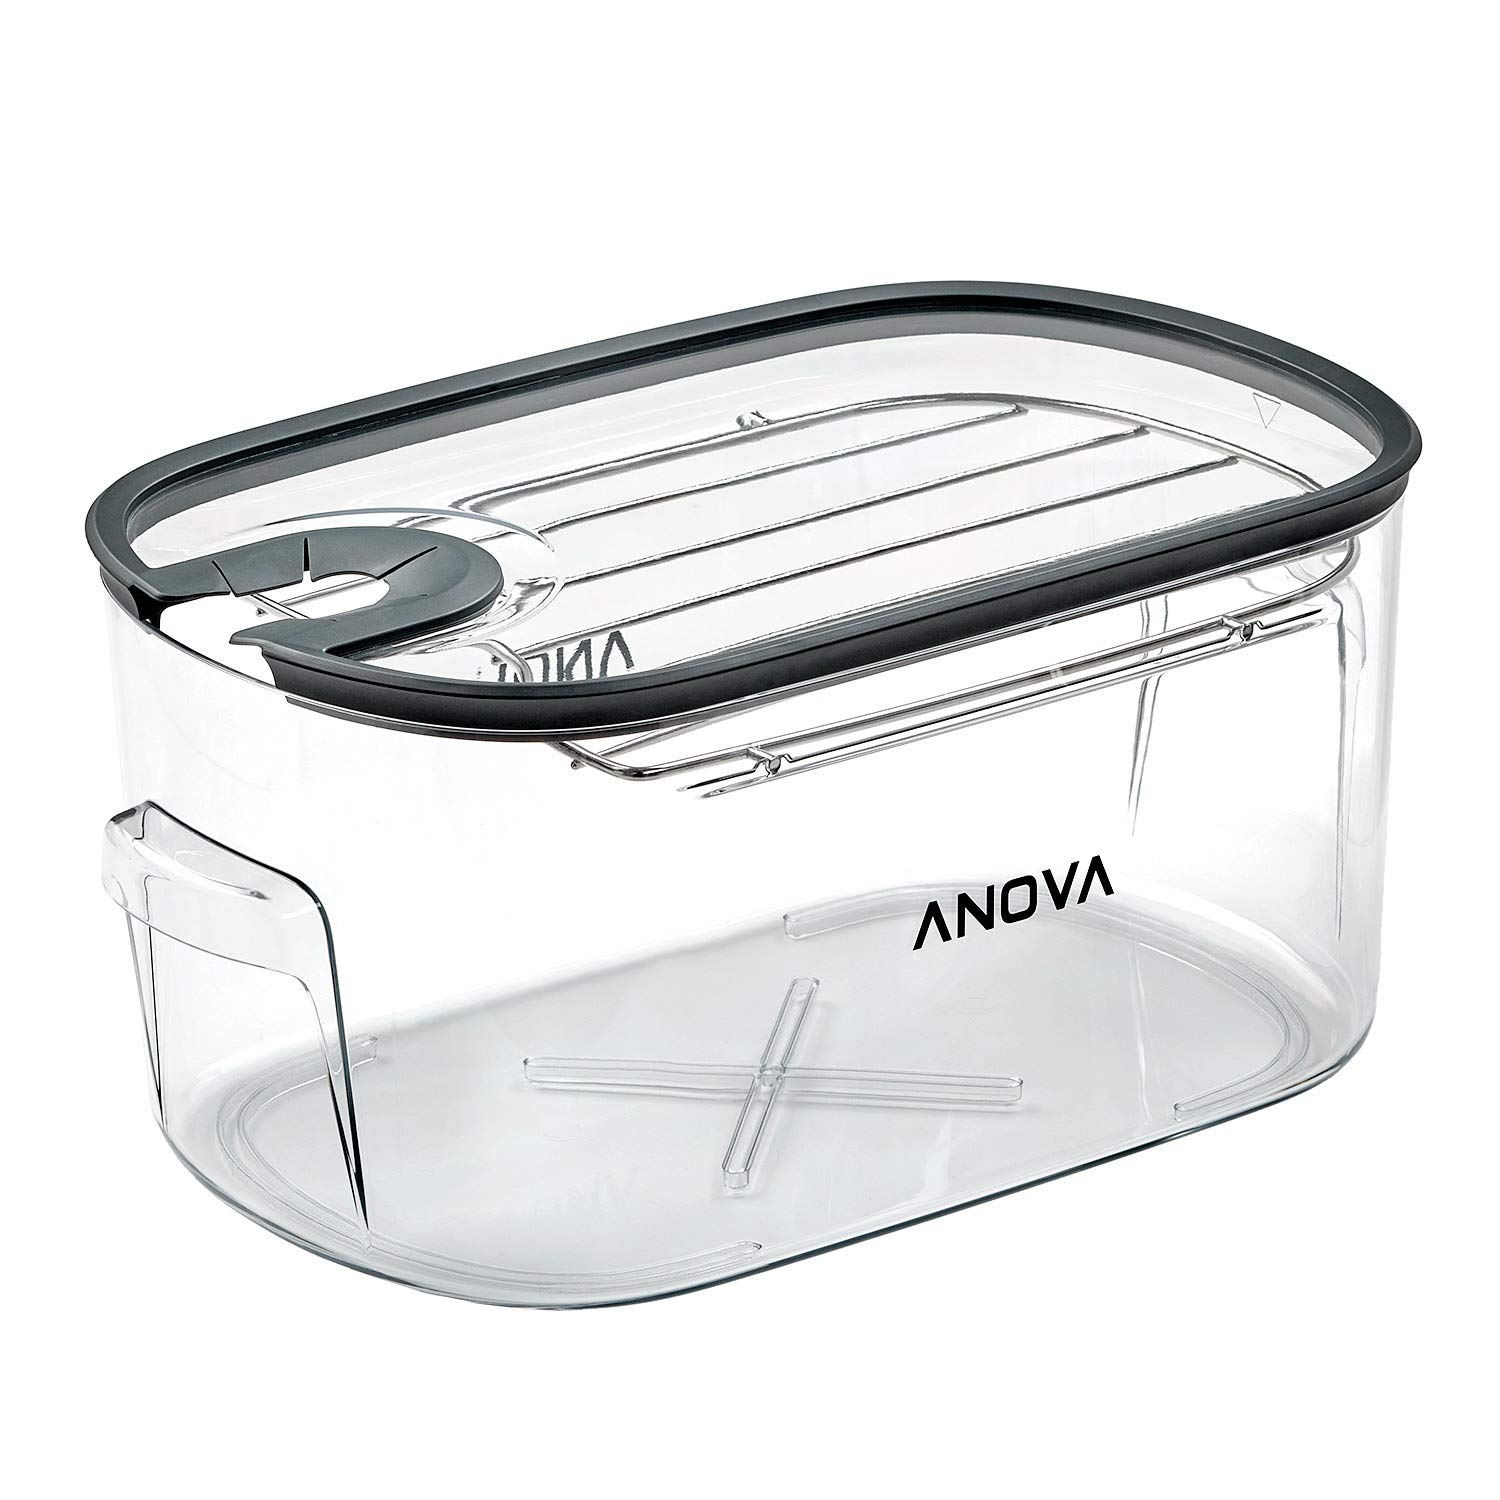 Anova Culinary ANTC01 Sous Vide Cooker Cooking container, Holds Up to 16L of Water, With Removable Lid and Rack